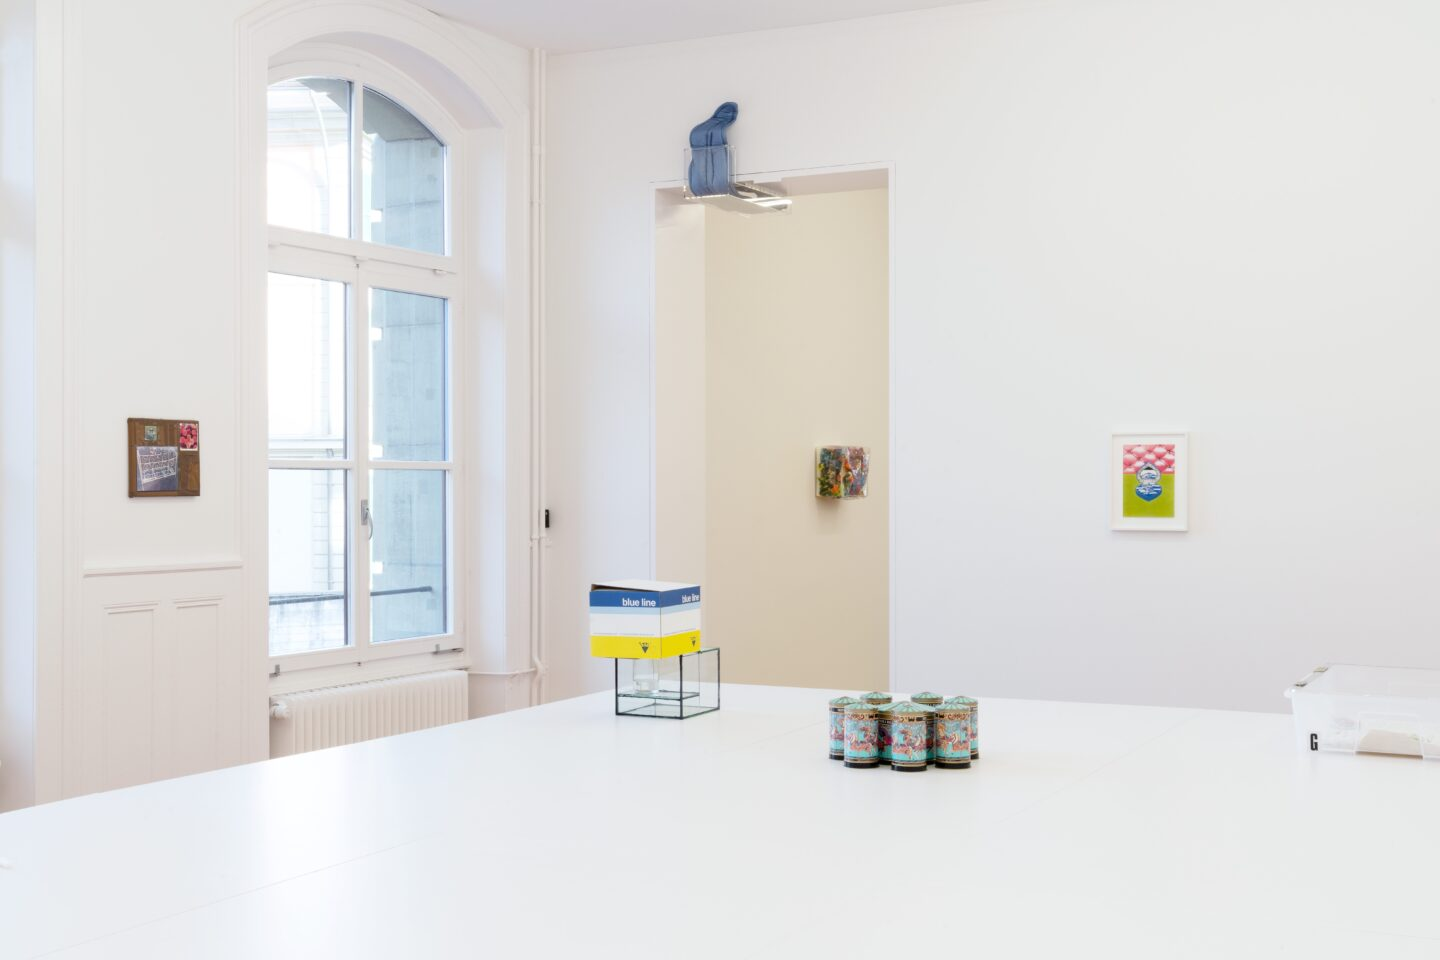 Exhibition View Groupshow «Kasten» at Stadtgalerie, Bern, 2020 / Photo: CE / Courtesy: the artists and Stadtgalerie, Bern